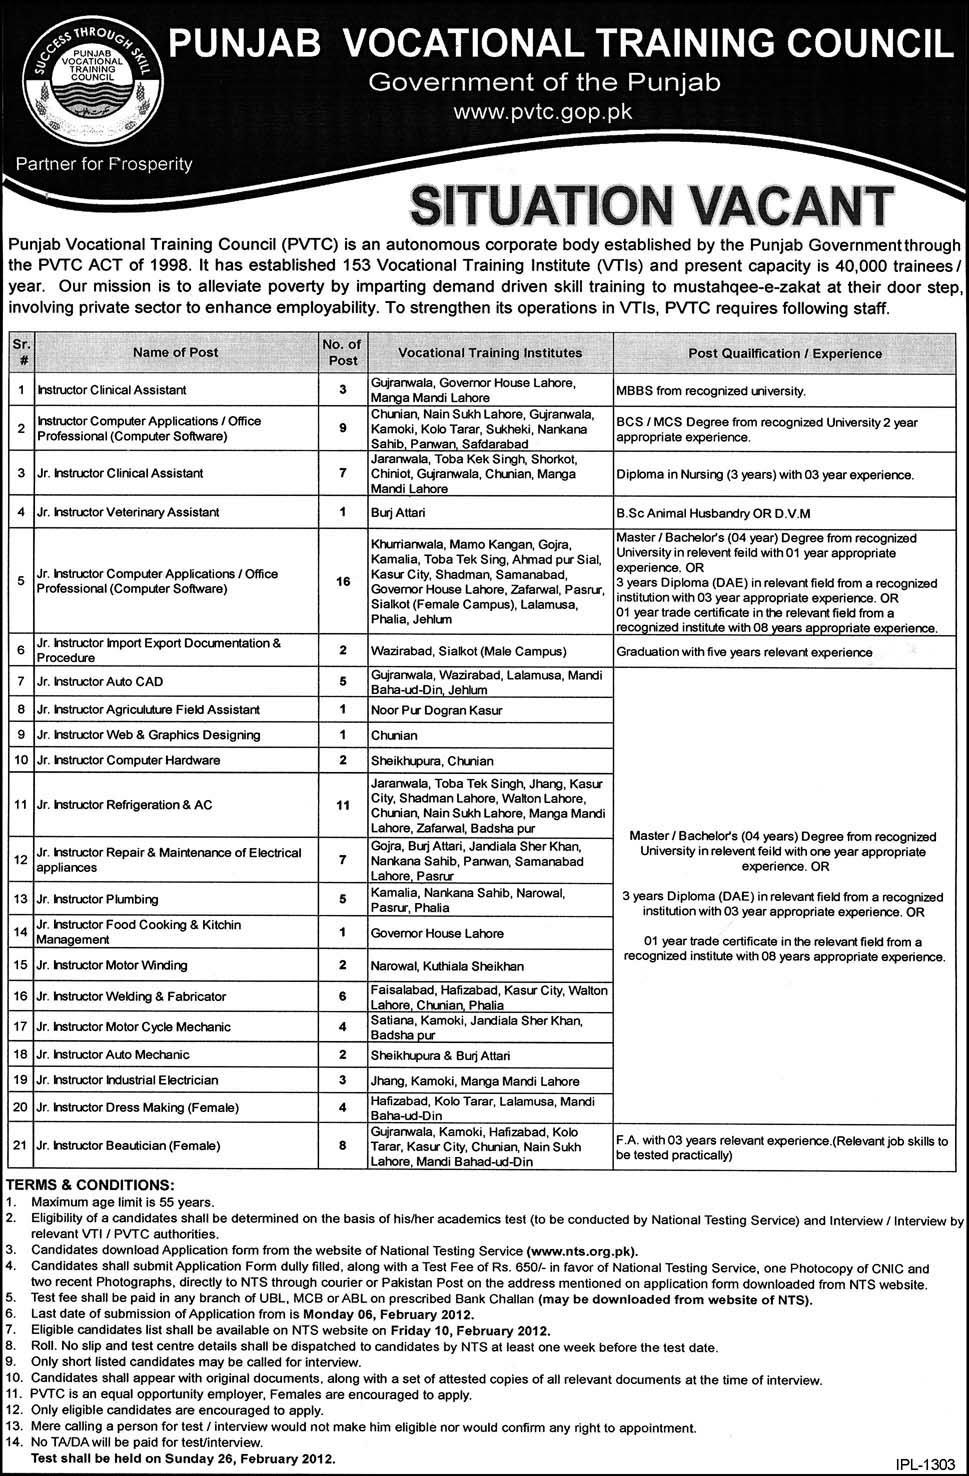 punjab vocational training council required jobs opportunity